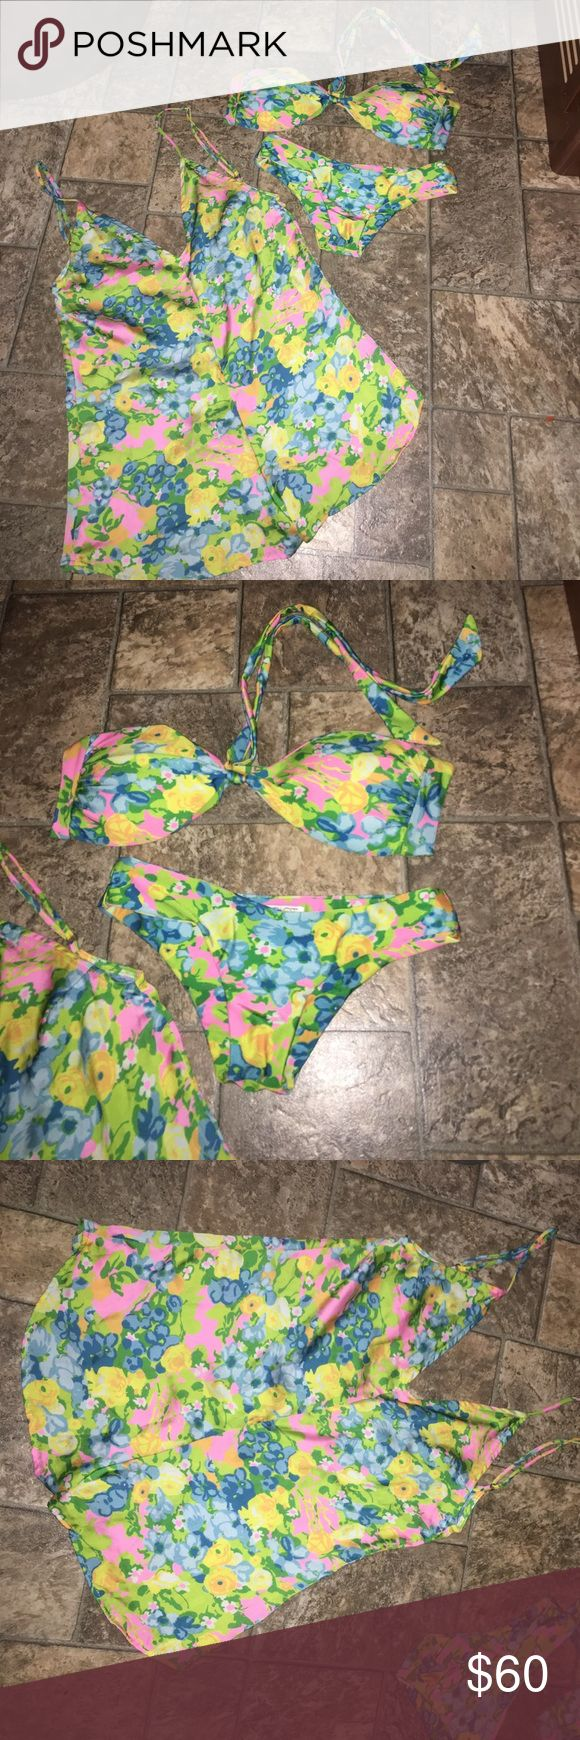 Beach Riot bikini and romper Xs/S Brand new beach riot bikini size XS and matching satin romper size small comes from a smoke and pet free home Beach Riot Swim Bikinis